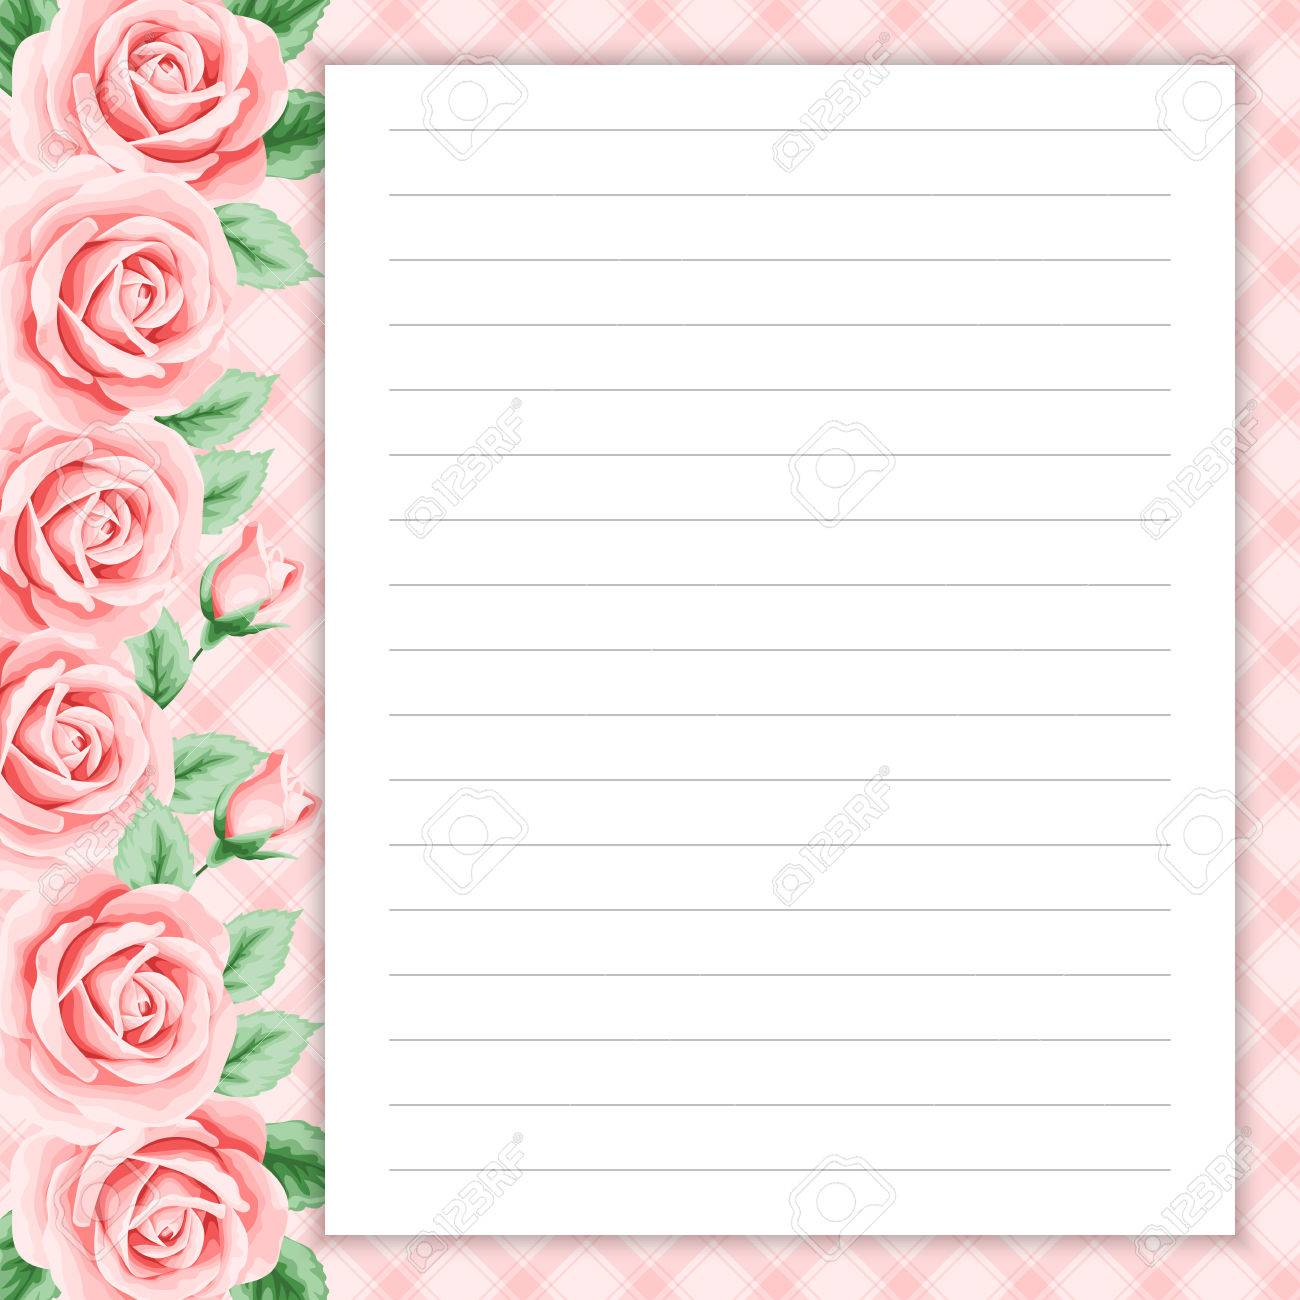 lined page for notes design in retro style floral background